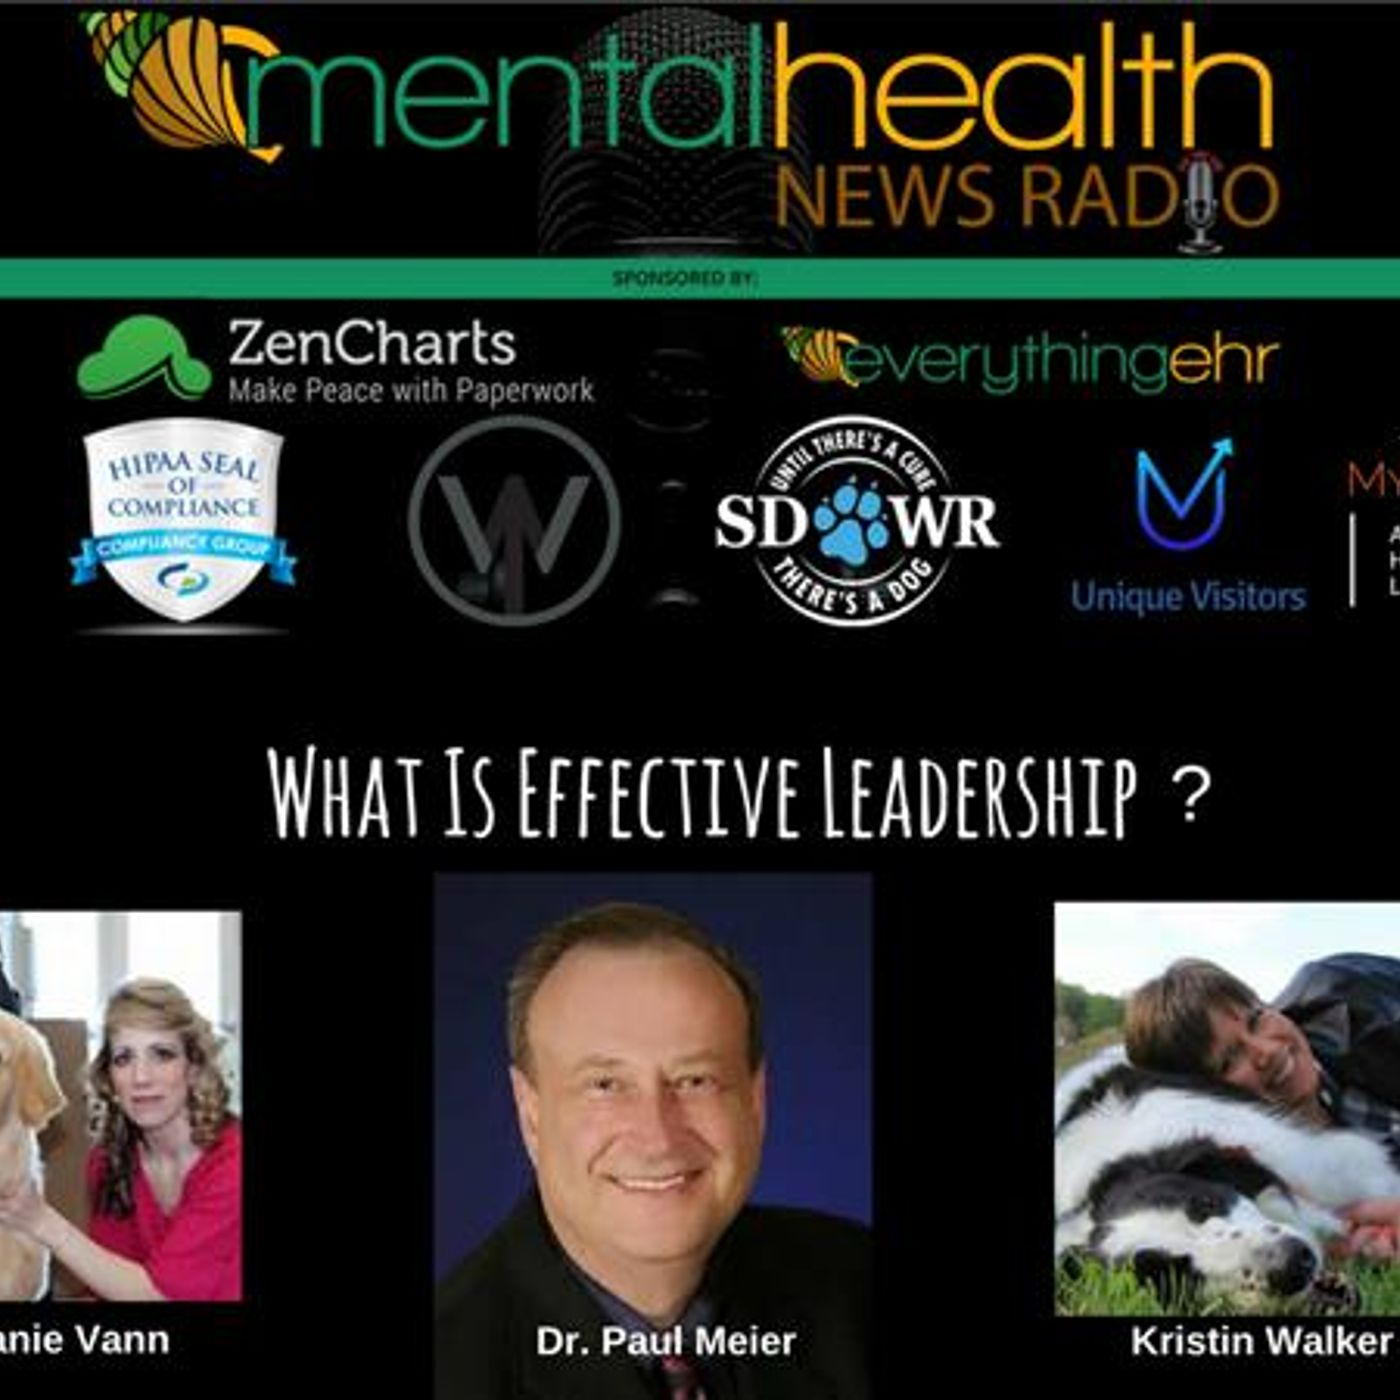 Mental Health News Radio - Round Table Discussions with Dr. Paul Meier: What Is Effective Leadership